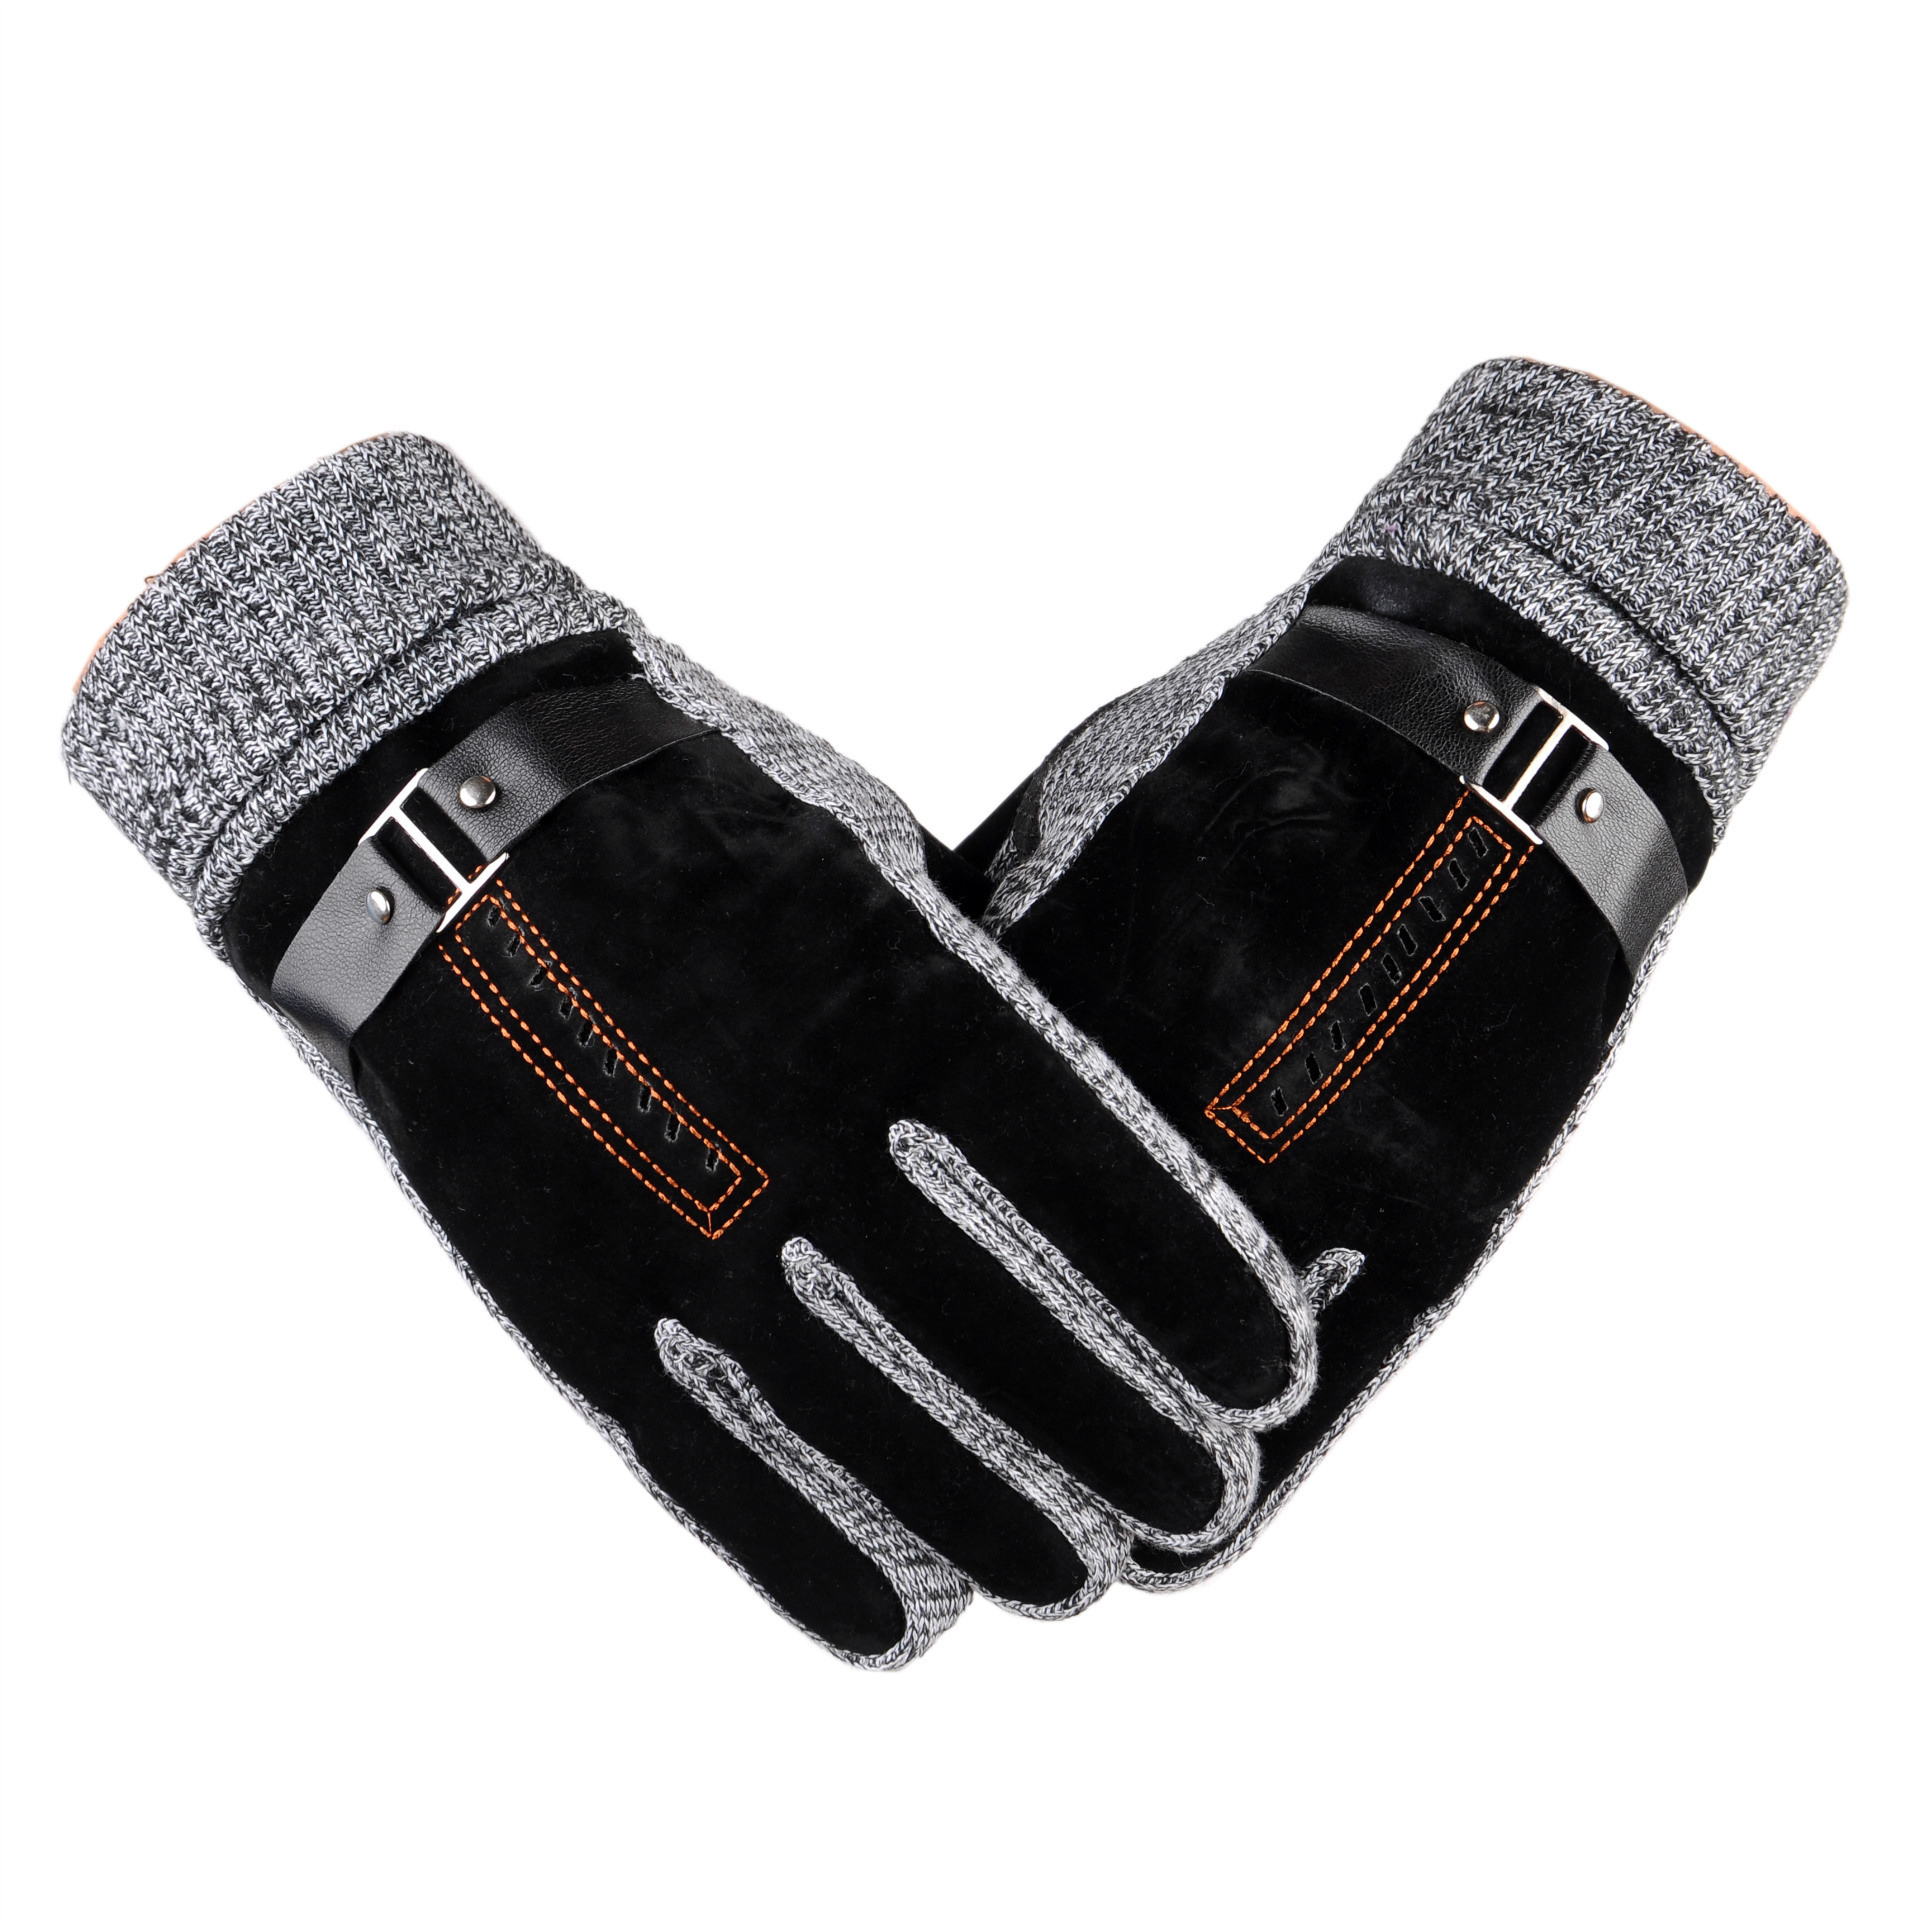 Winter Men's Anti Skid Windproof Thermal Cycling Gloves